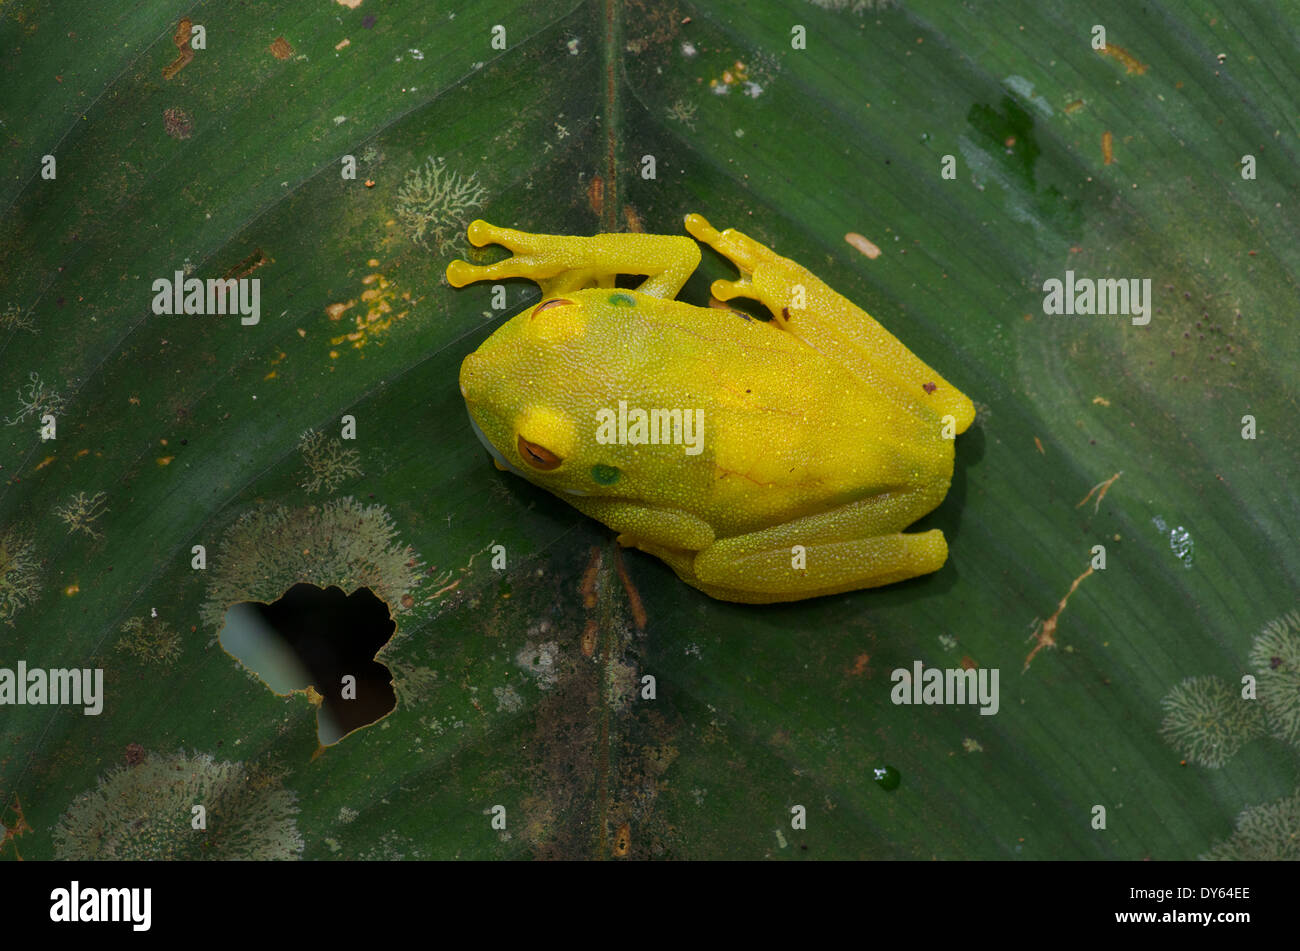 A Rough-skinned Green Treefrog (Hypsiboas cinerascens) sleeping by day on a vertical leaf in the Amazon basin in Peru. - Stock Image